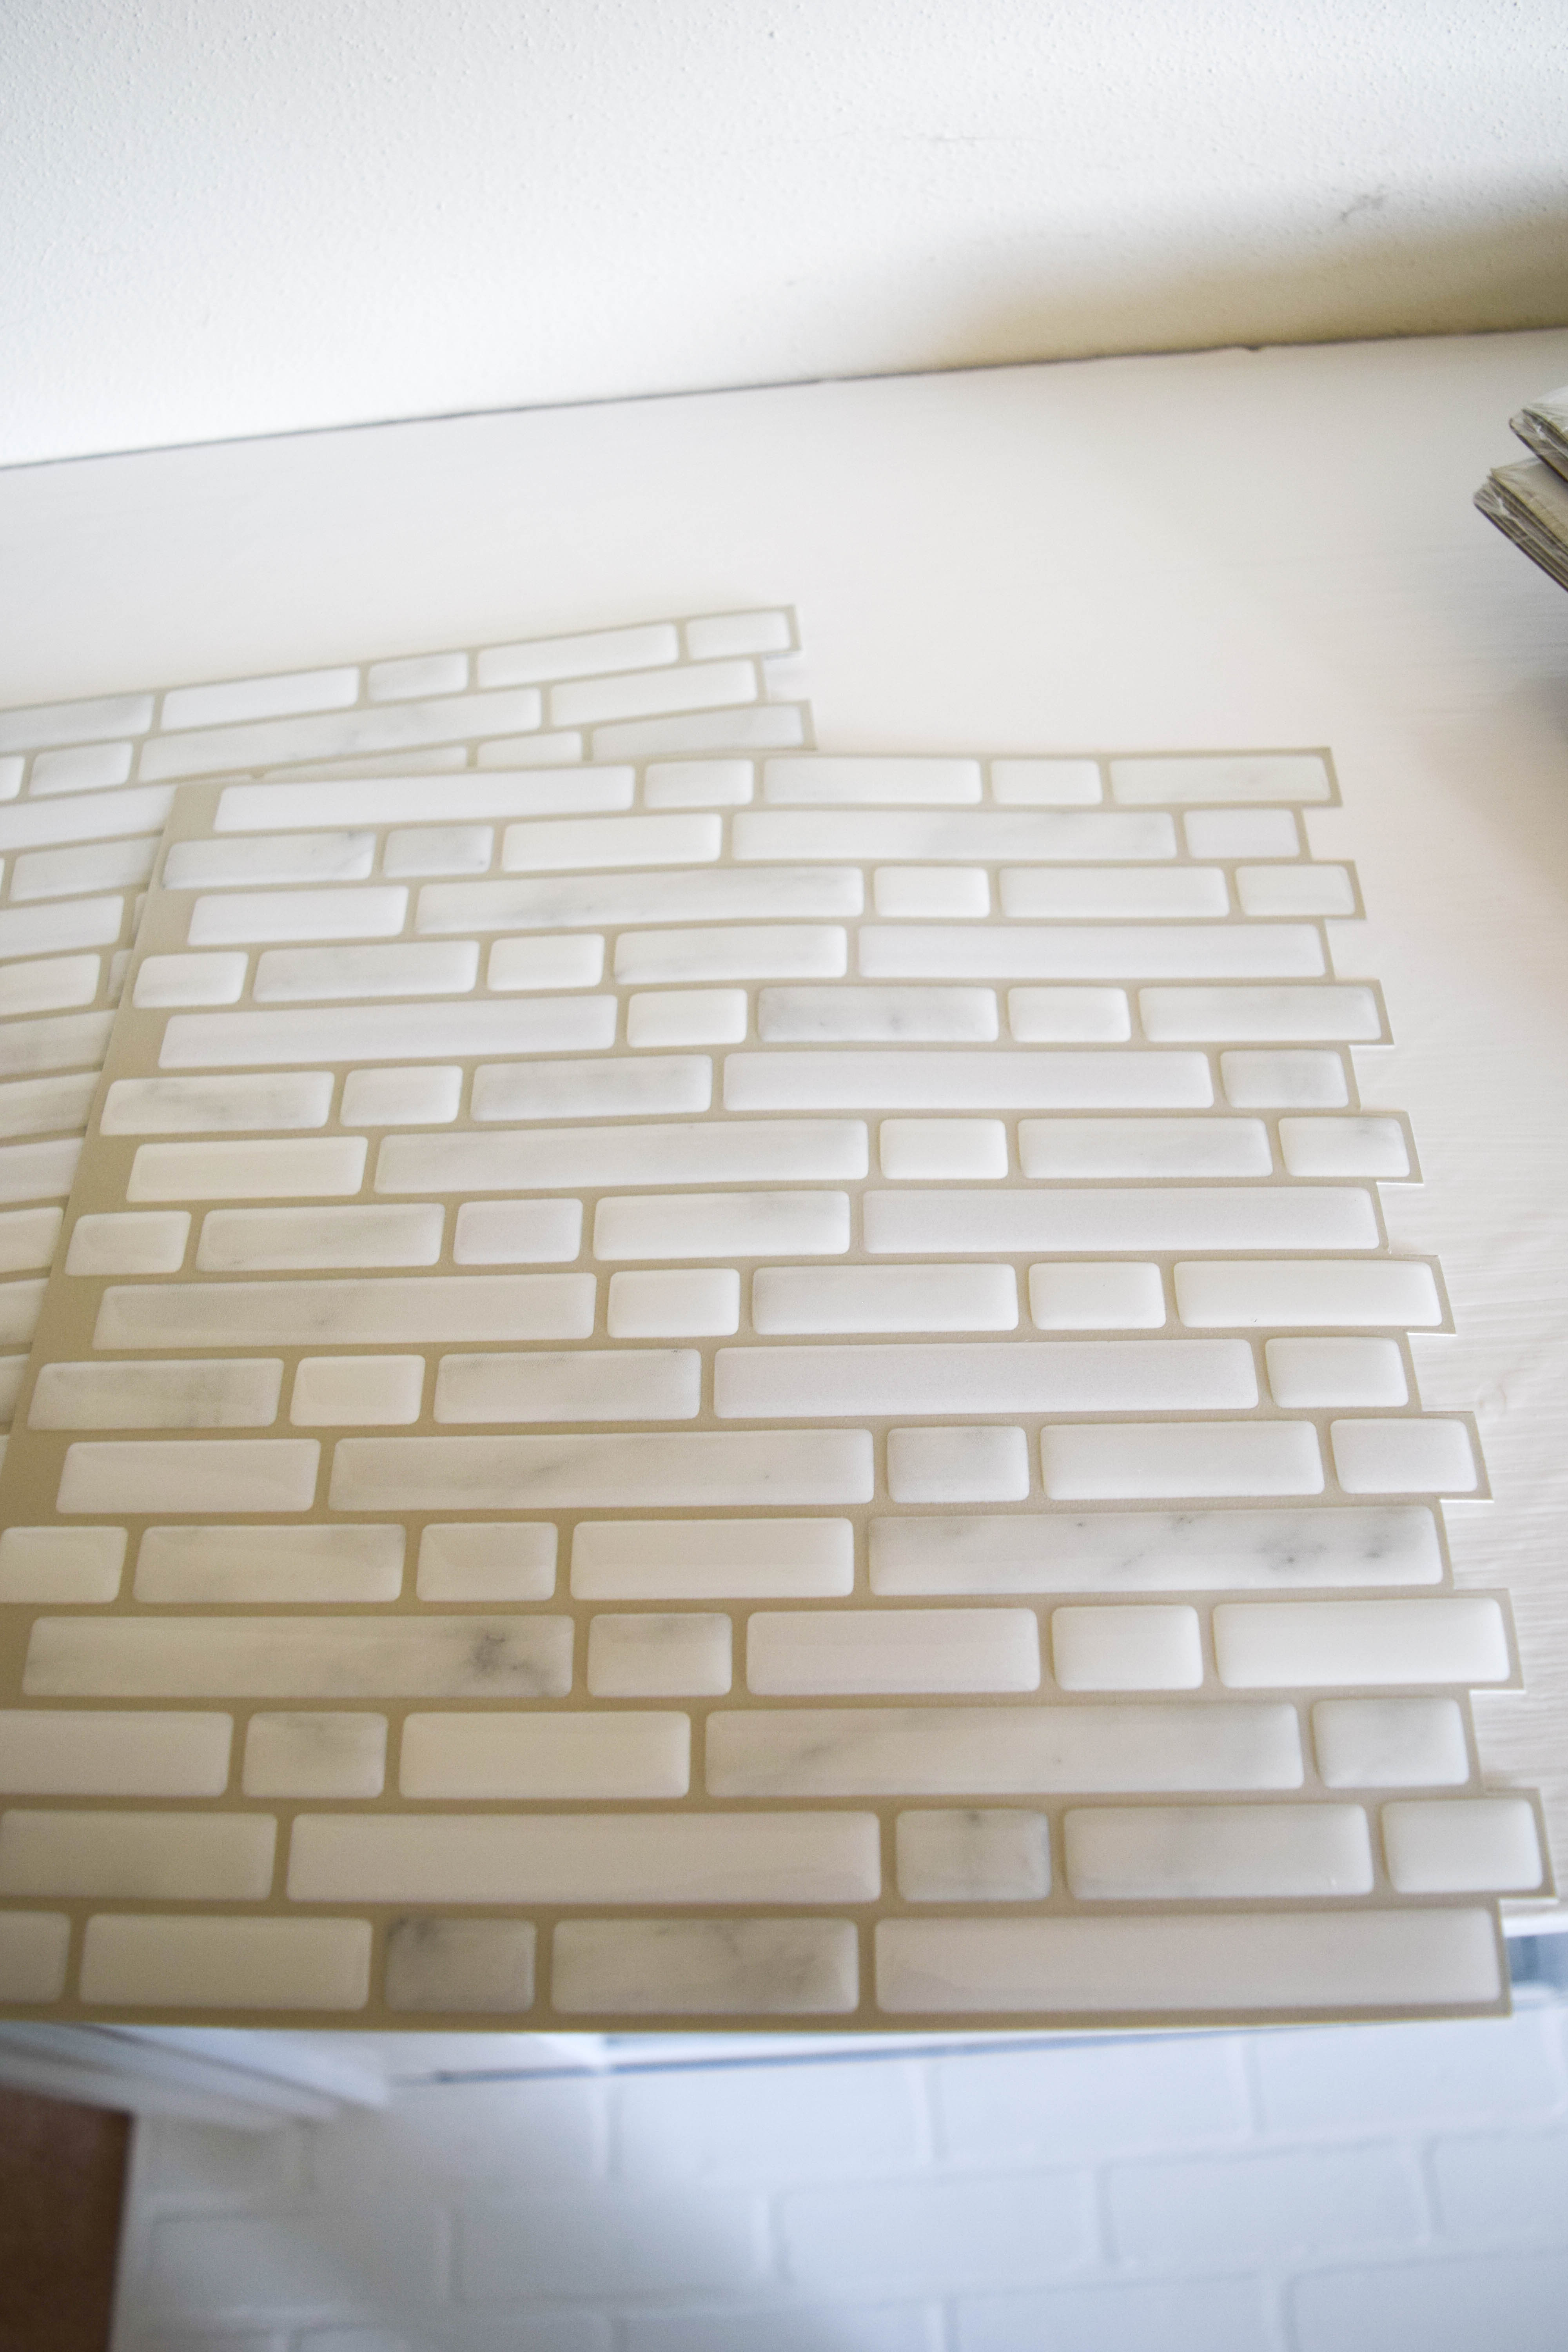 They Also Looked And Felt Very Much Like A Tile Surface So I Get The Look Of Without All Work